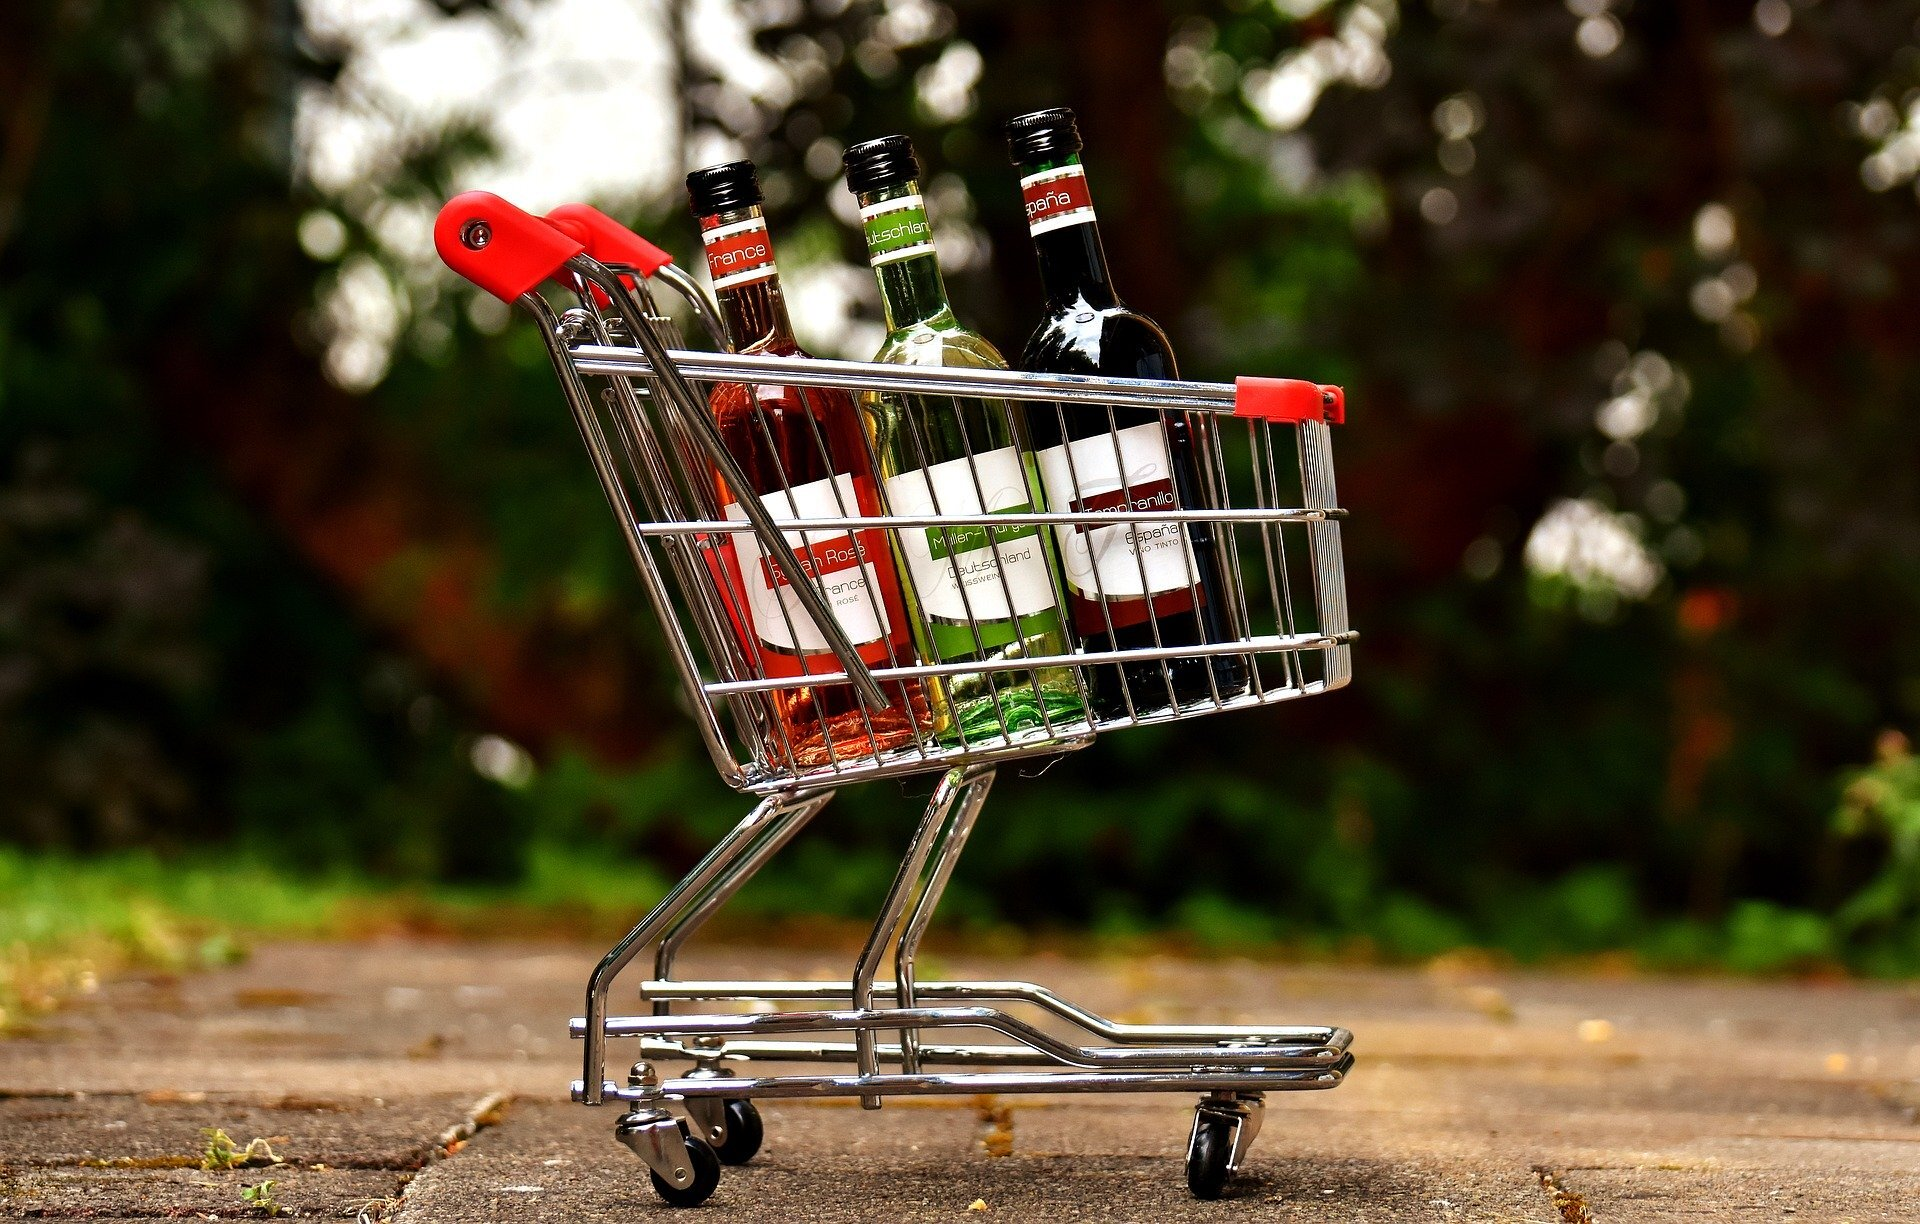 Outside the bottle | Time to look at the real economy for the road ahead